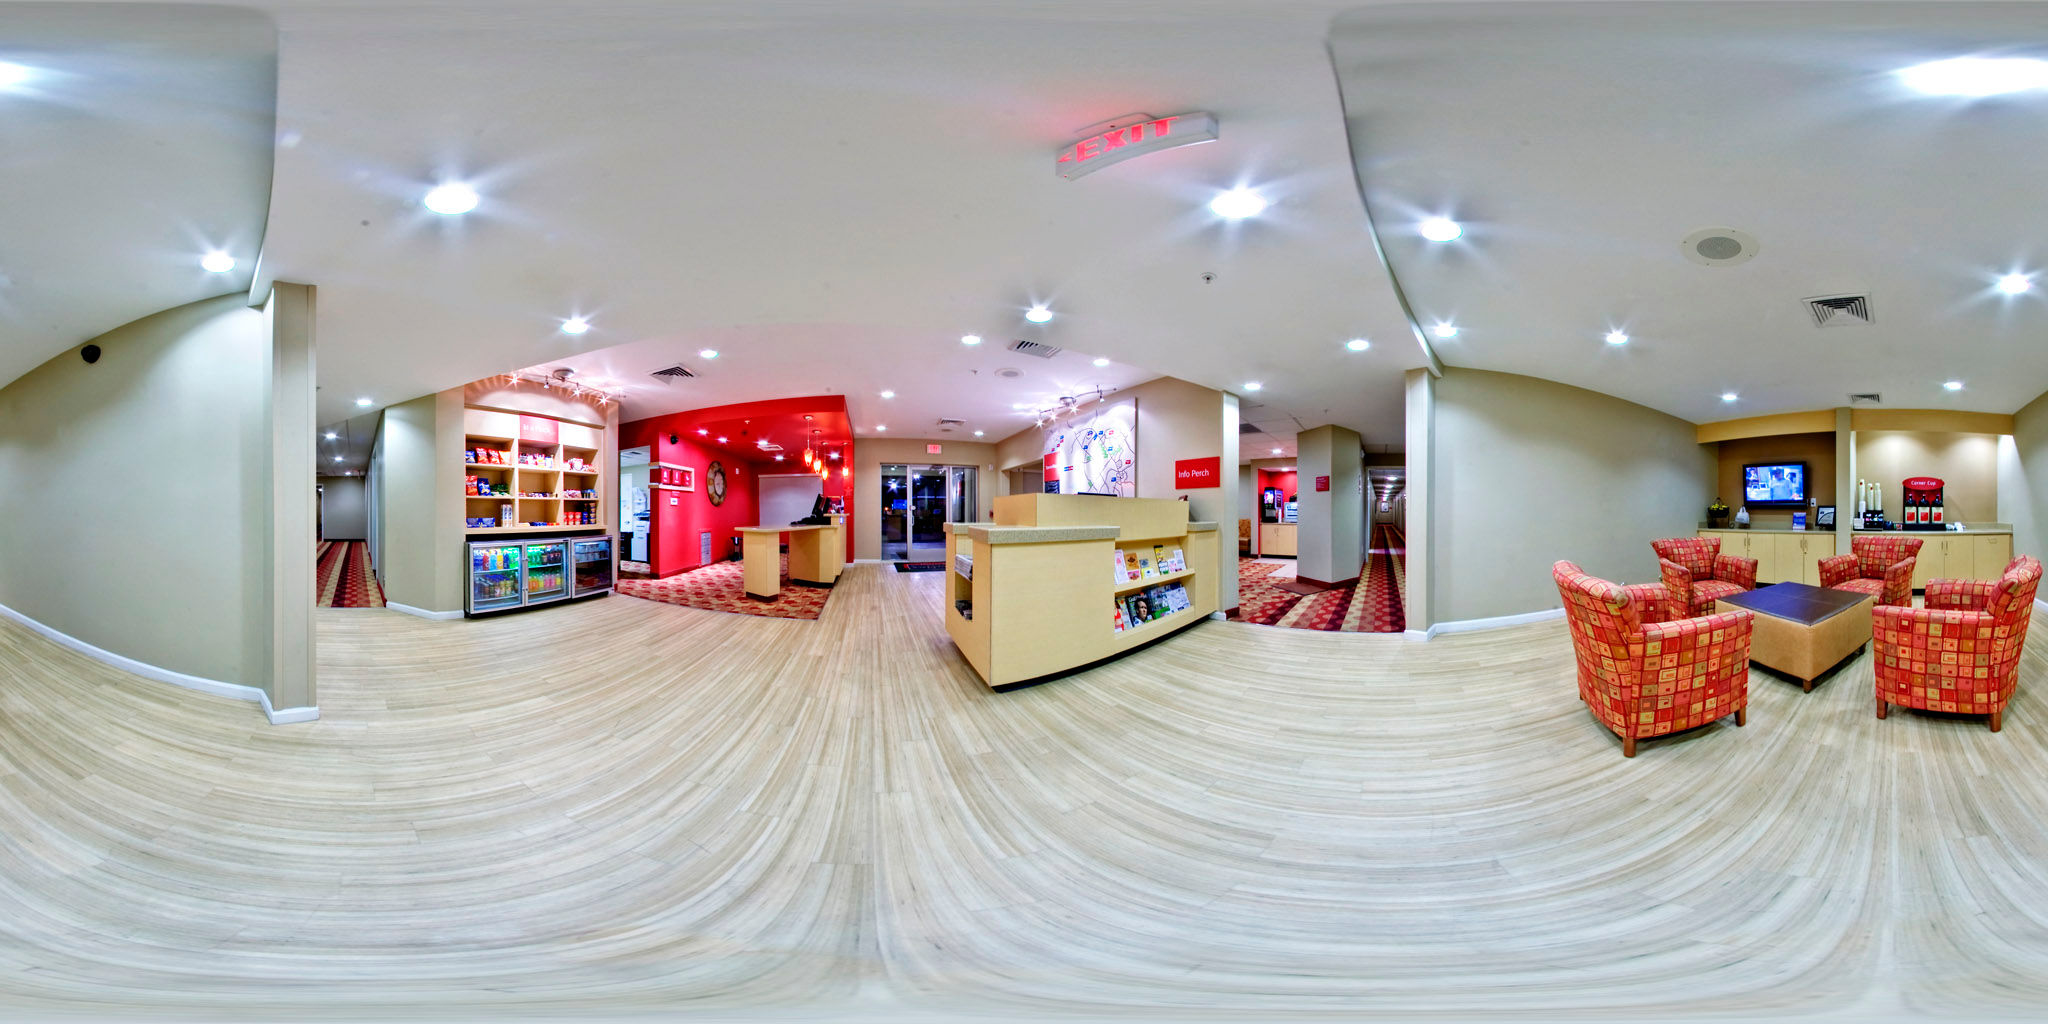 TownePlace Suites by Marriott Jacksonville image 0